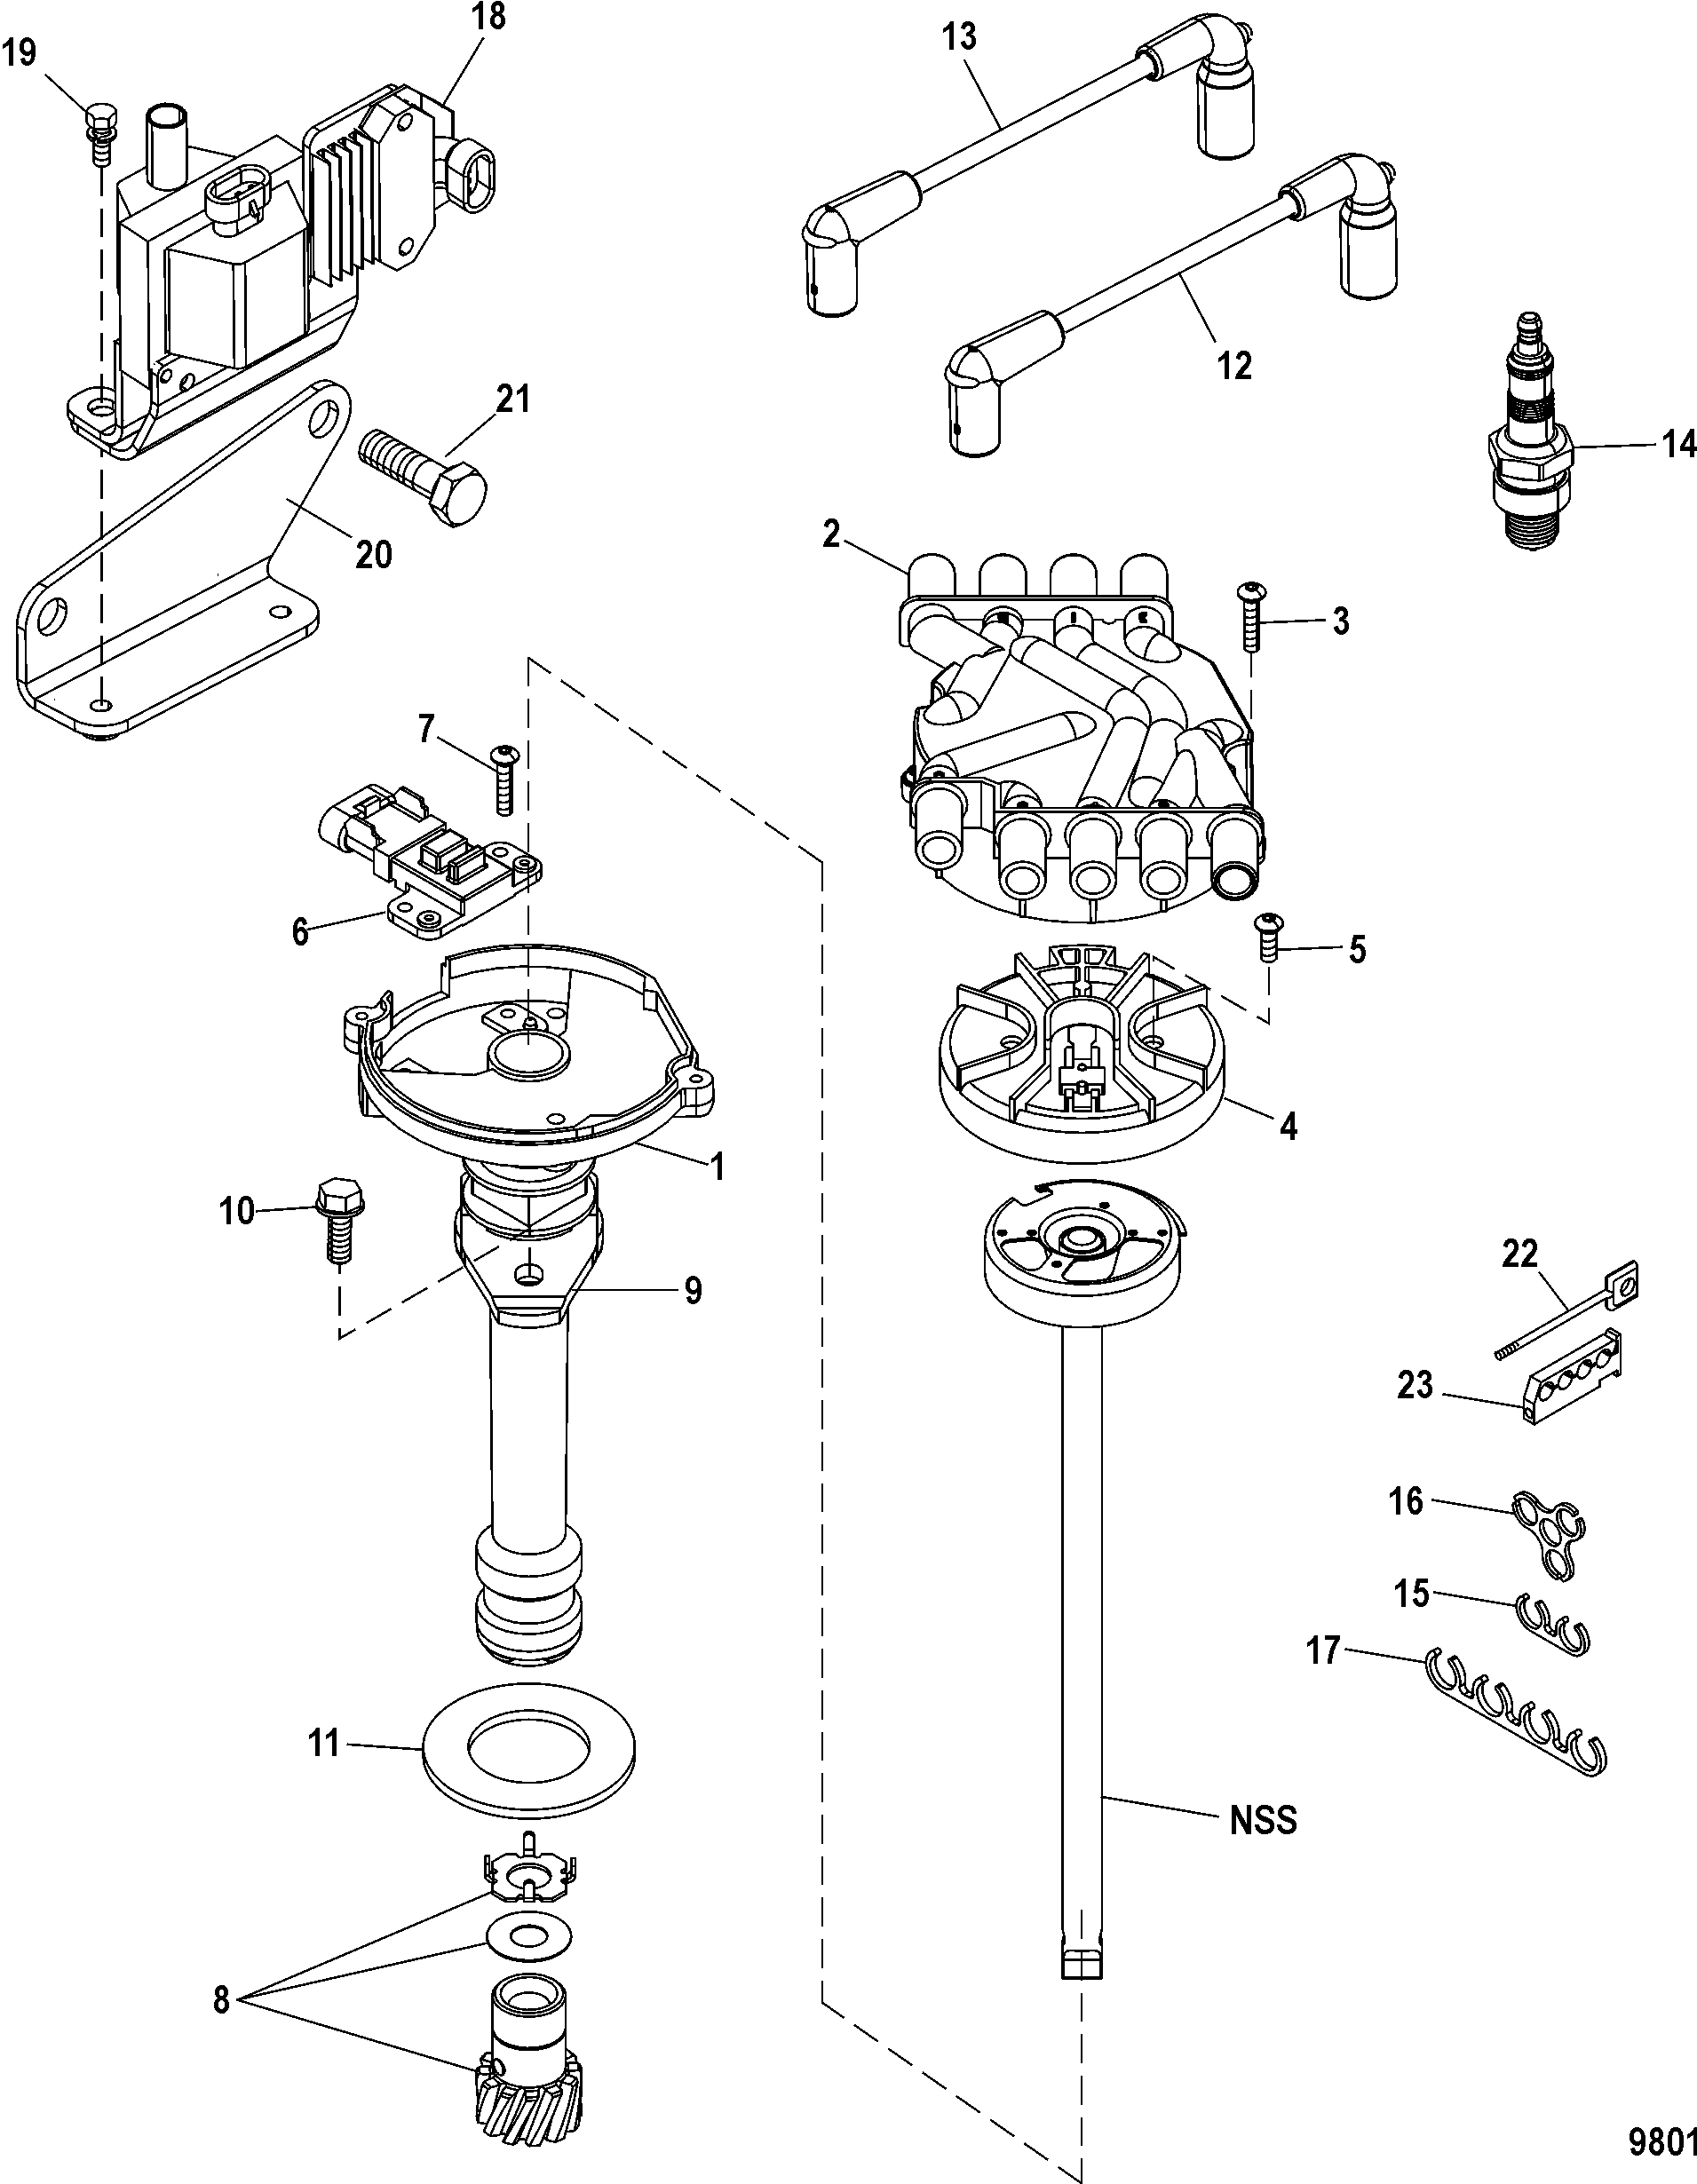 Distributor And Ignition Components For Mercruiser 5 0